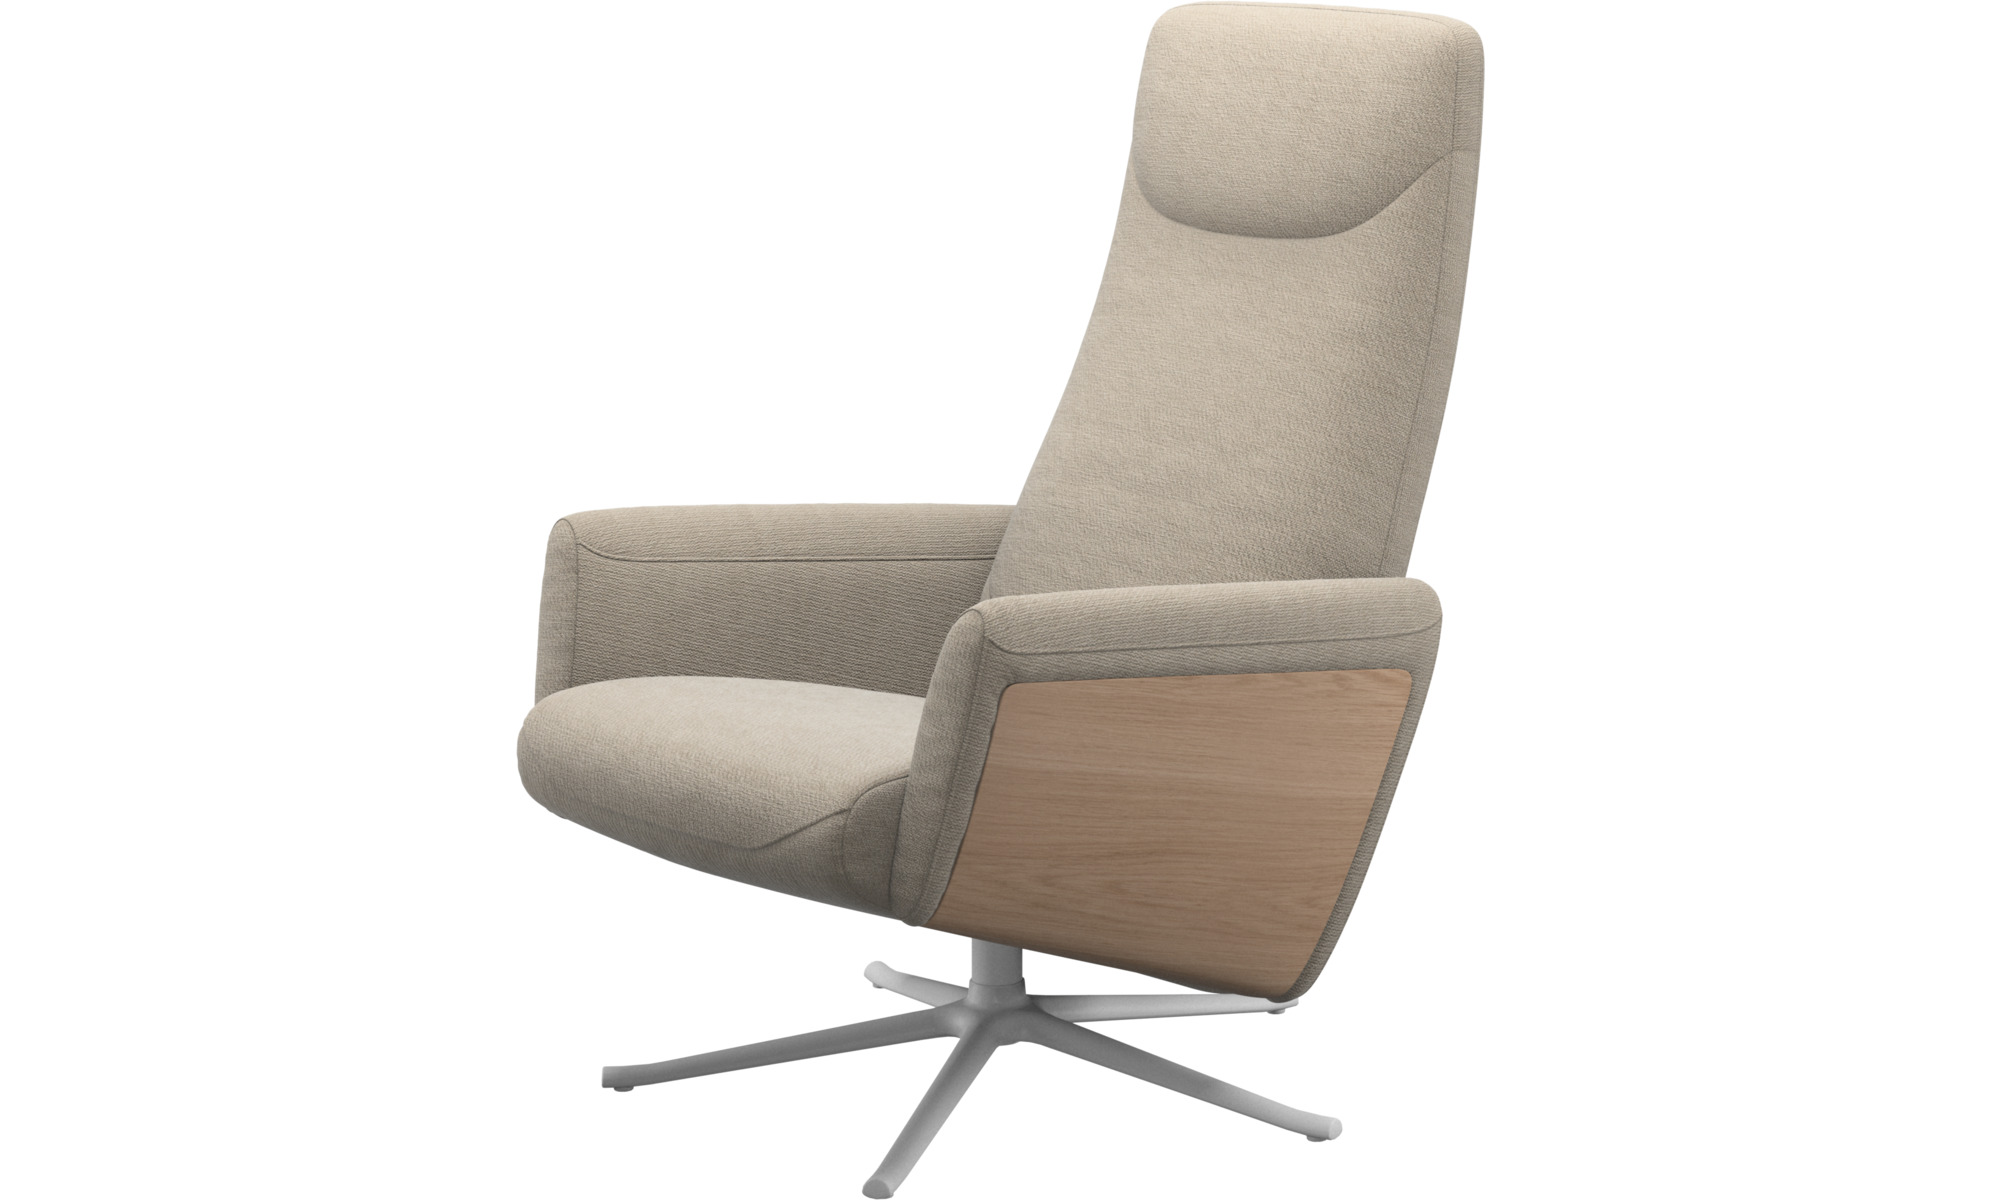 Relax Sessel Lucca Relax Sessel Mit Drehfunktion Boconcept